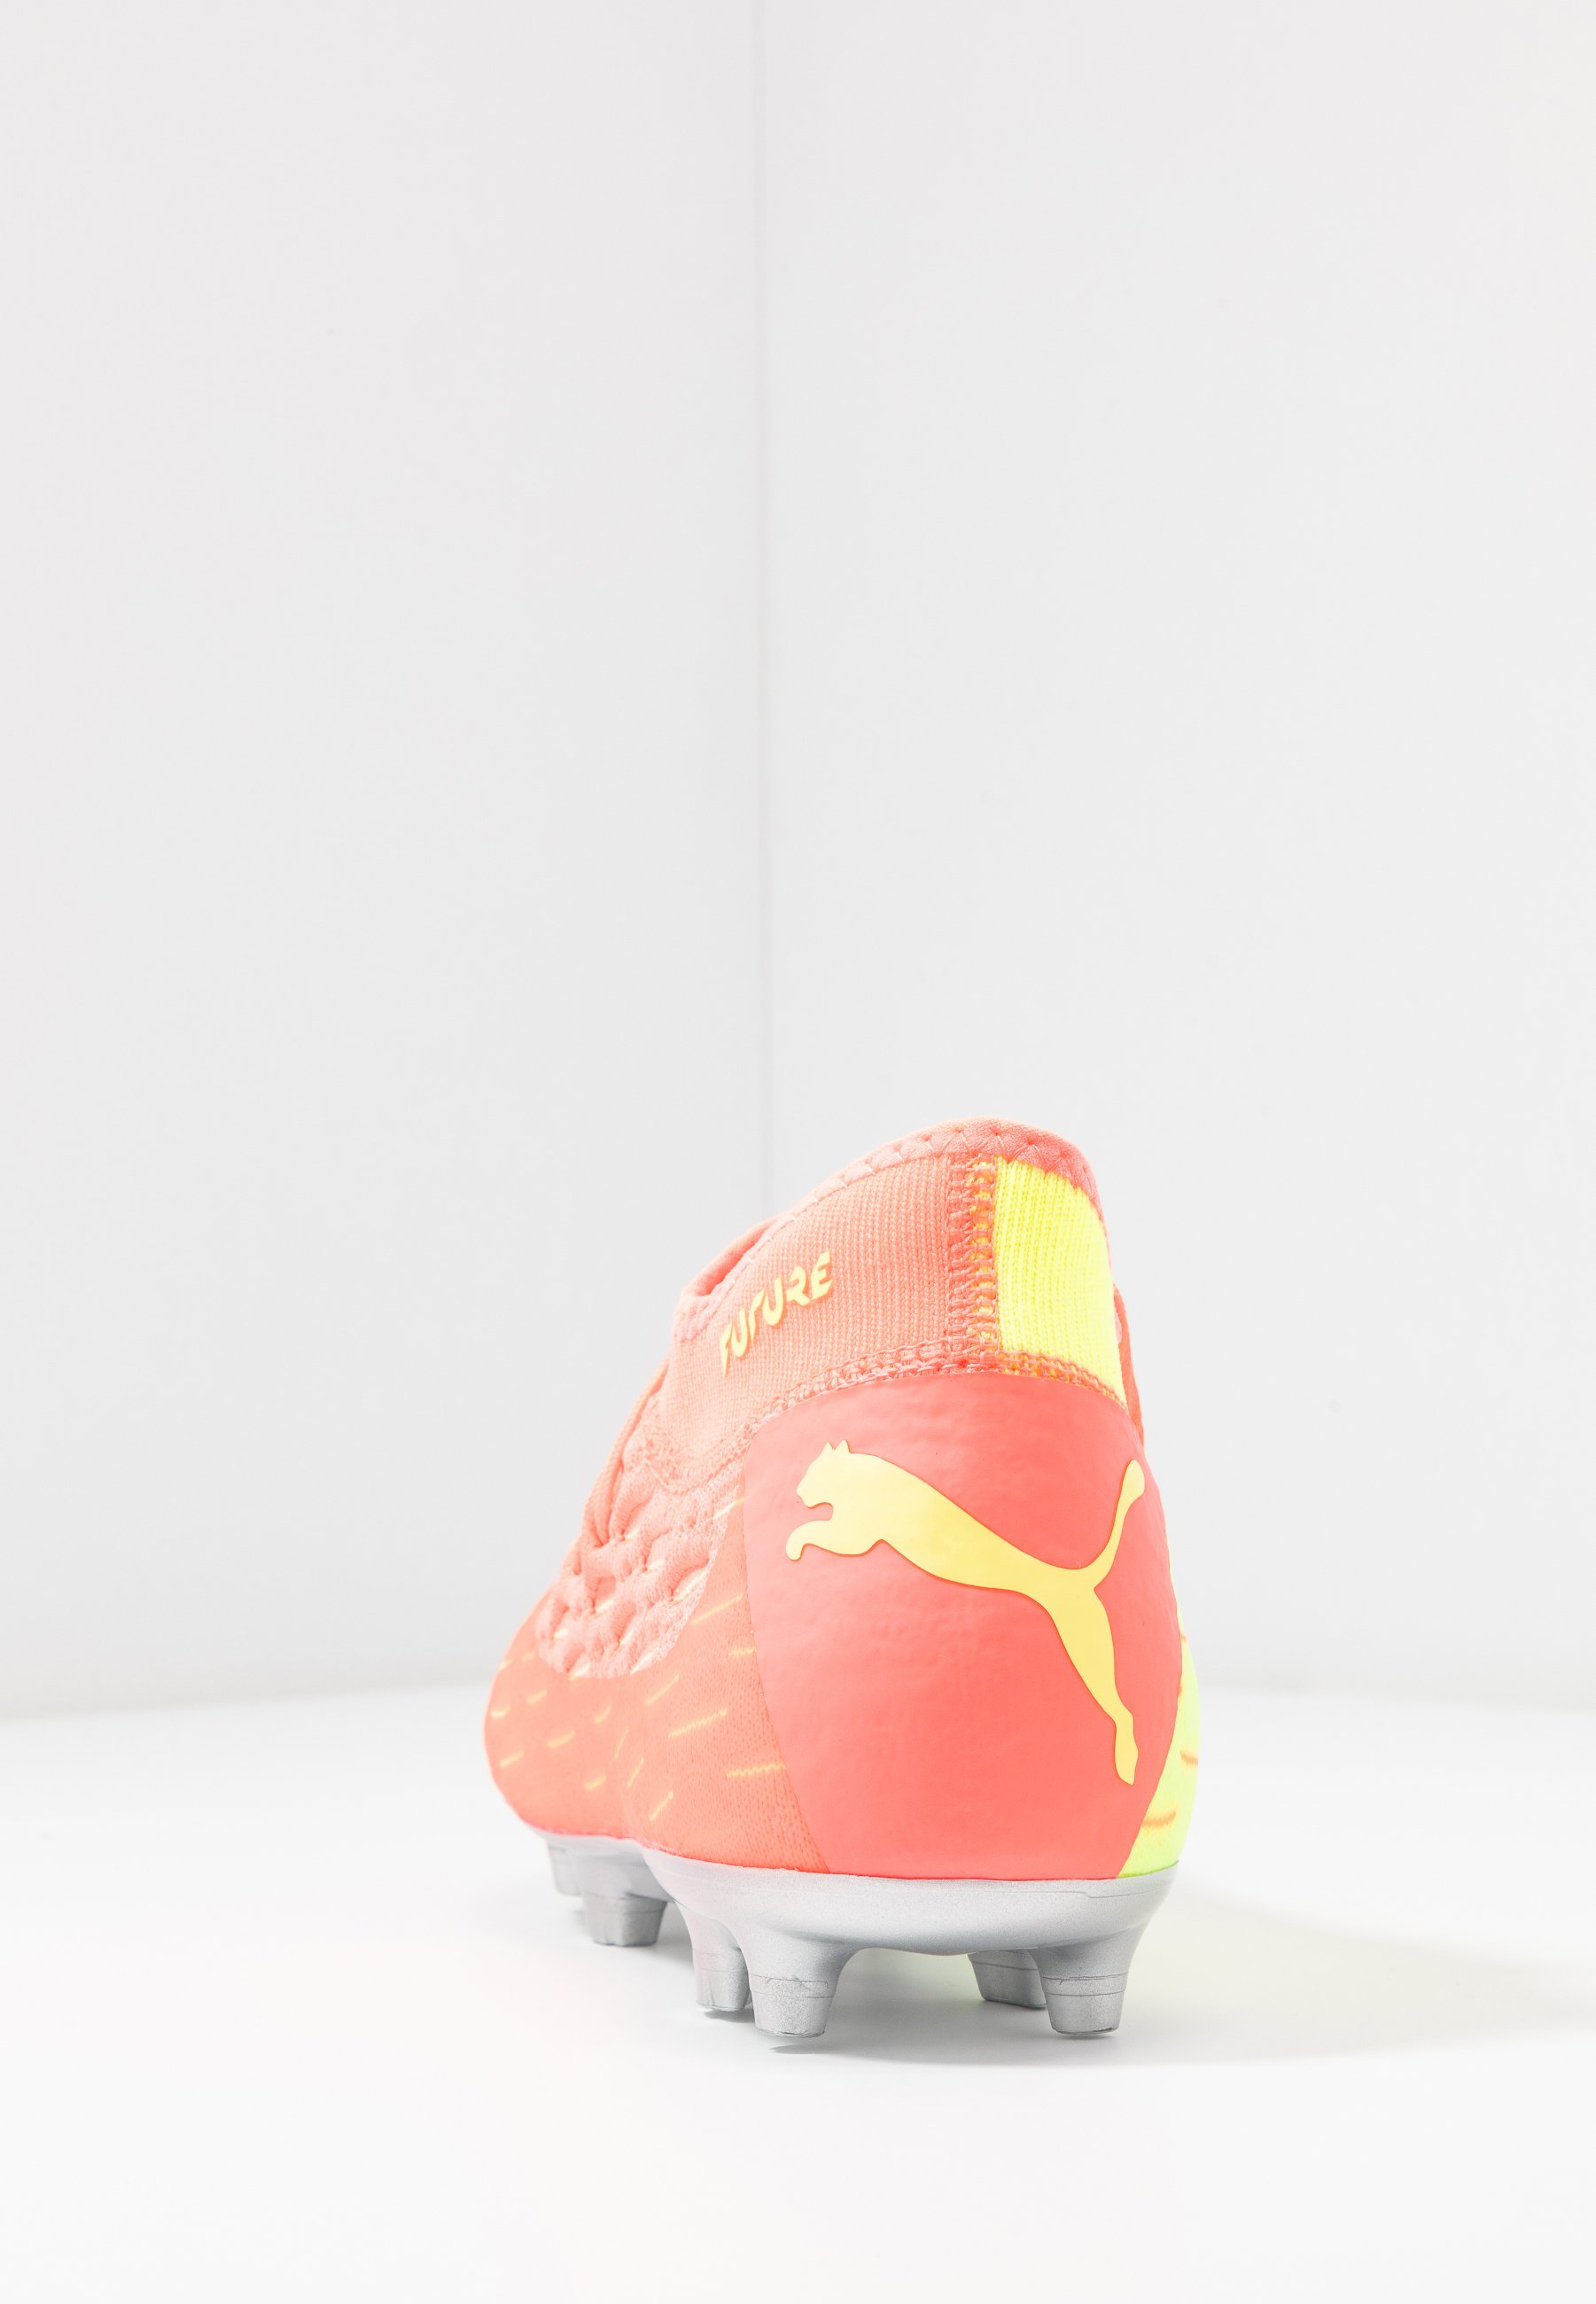 FUTURE 5.2 NETFIT OSG FGAG Chaussures de foot à crampons energy peachfizzy yellow